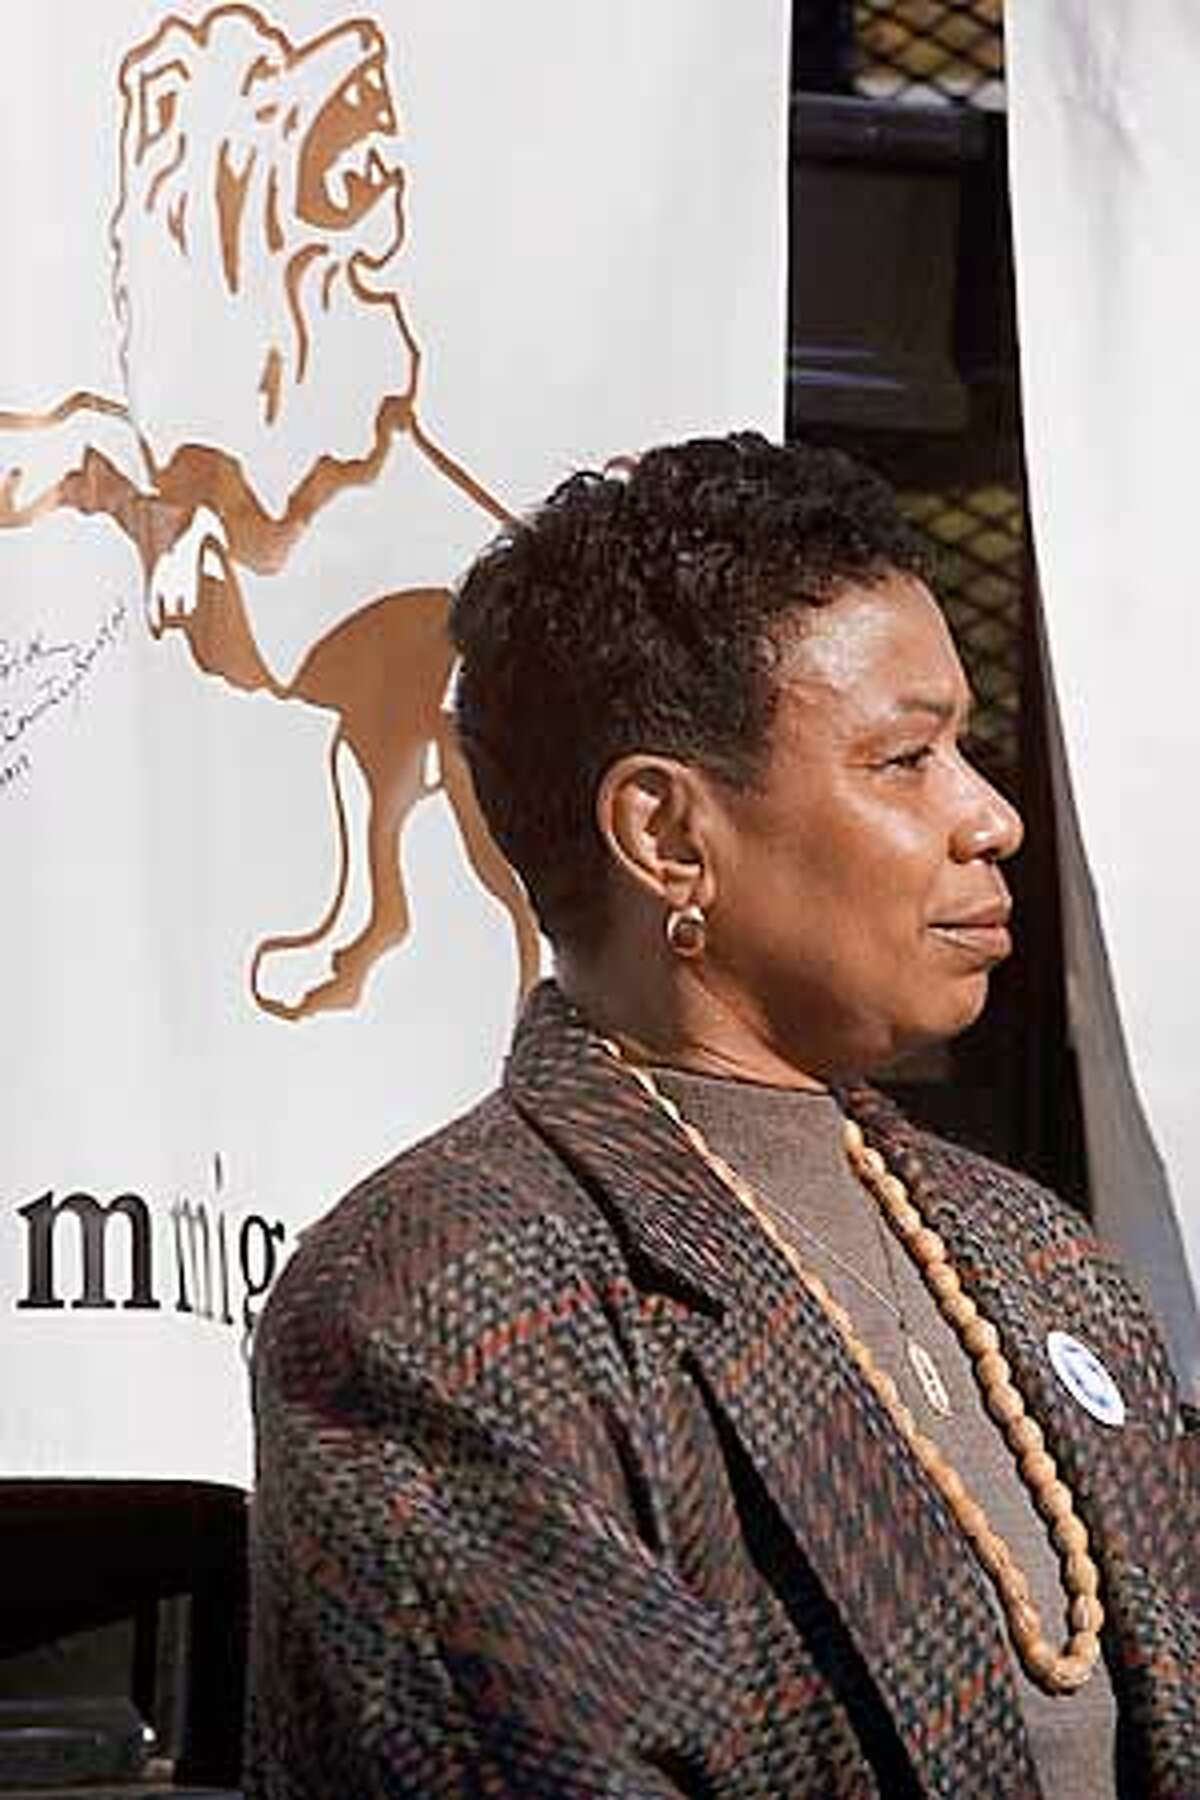 ( ) 27 Jan 2001 -- Oakland, CA, Congresswoman Barbara Lee speaking at Rally for Migrant Amnesty and Immigrant Rights, sponsored by the Labor and Immigrant Organizing Network (LION), Oakland, CA. Photo by Lonny Shavelson/PictureDesk International --COPYRIGHT 2001.-